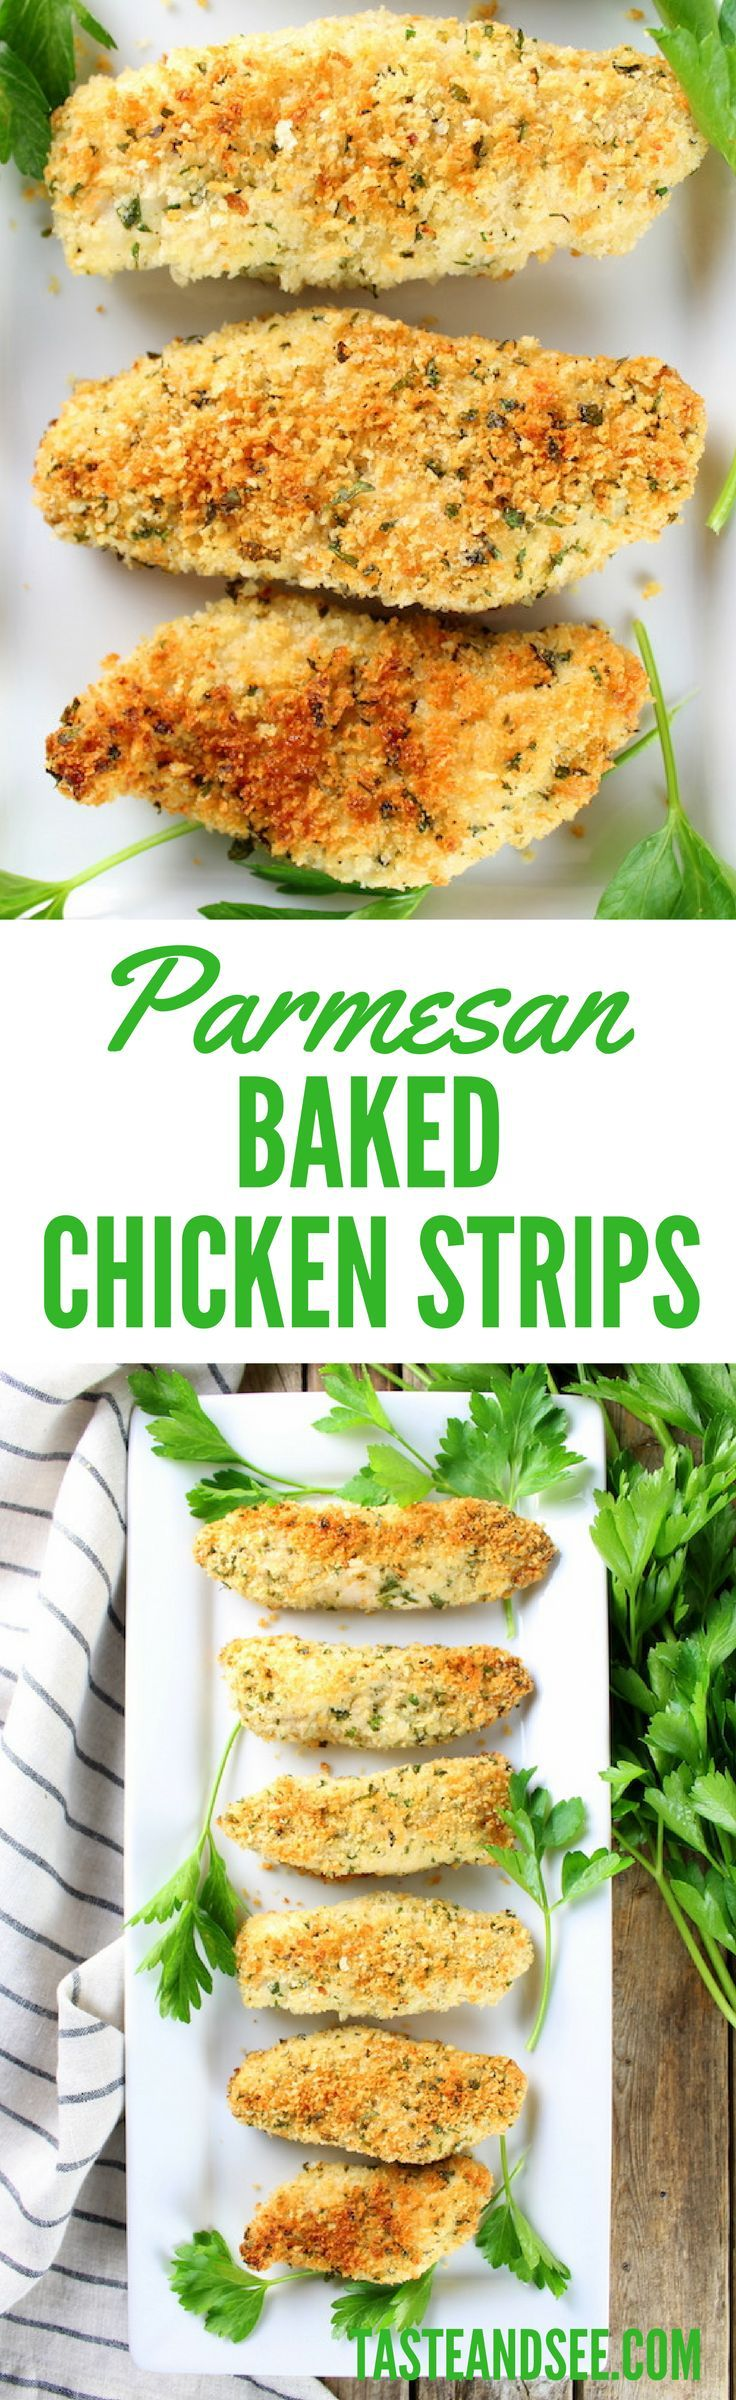 how to cook breaded chicken strips in the oven